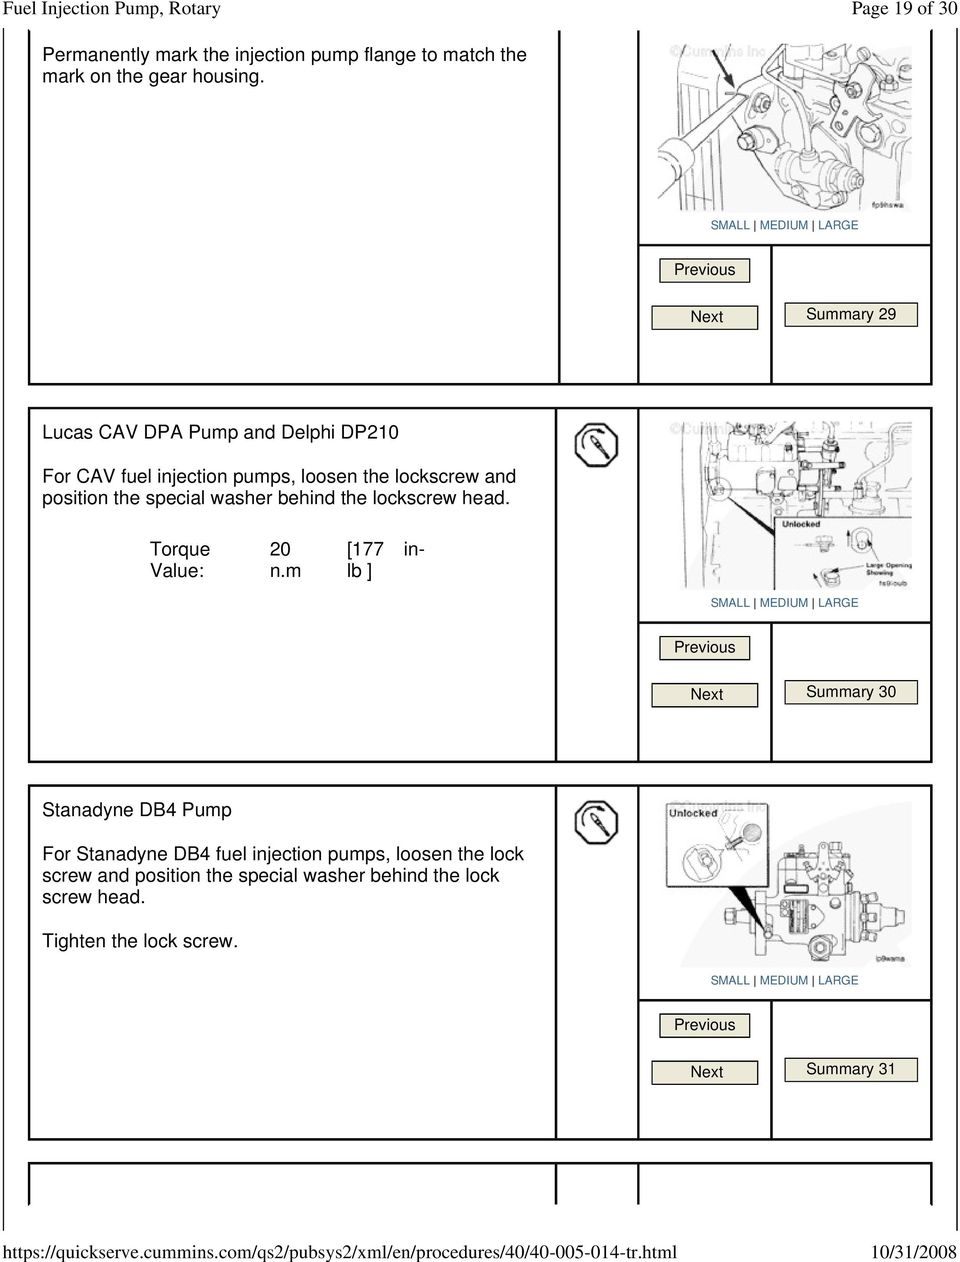 Fuel Injection Pump, Rotary ( ) - PDF